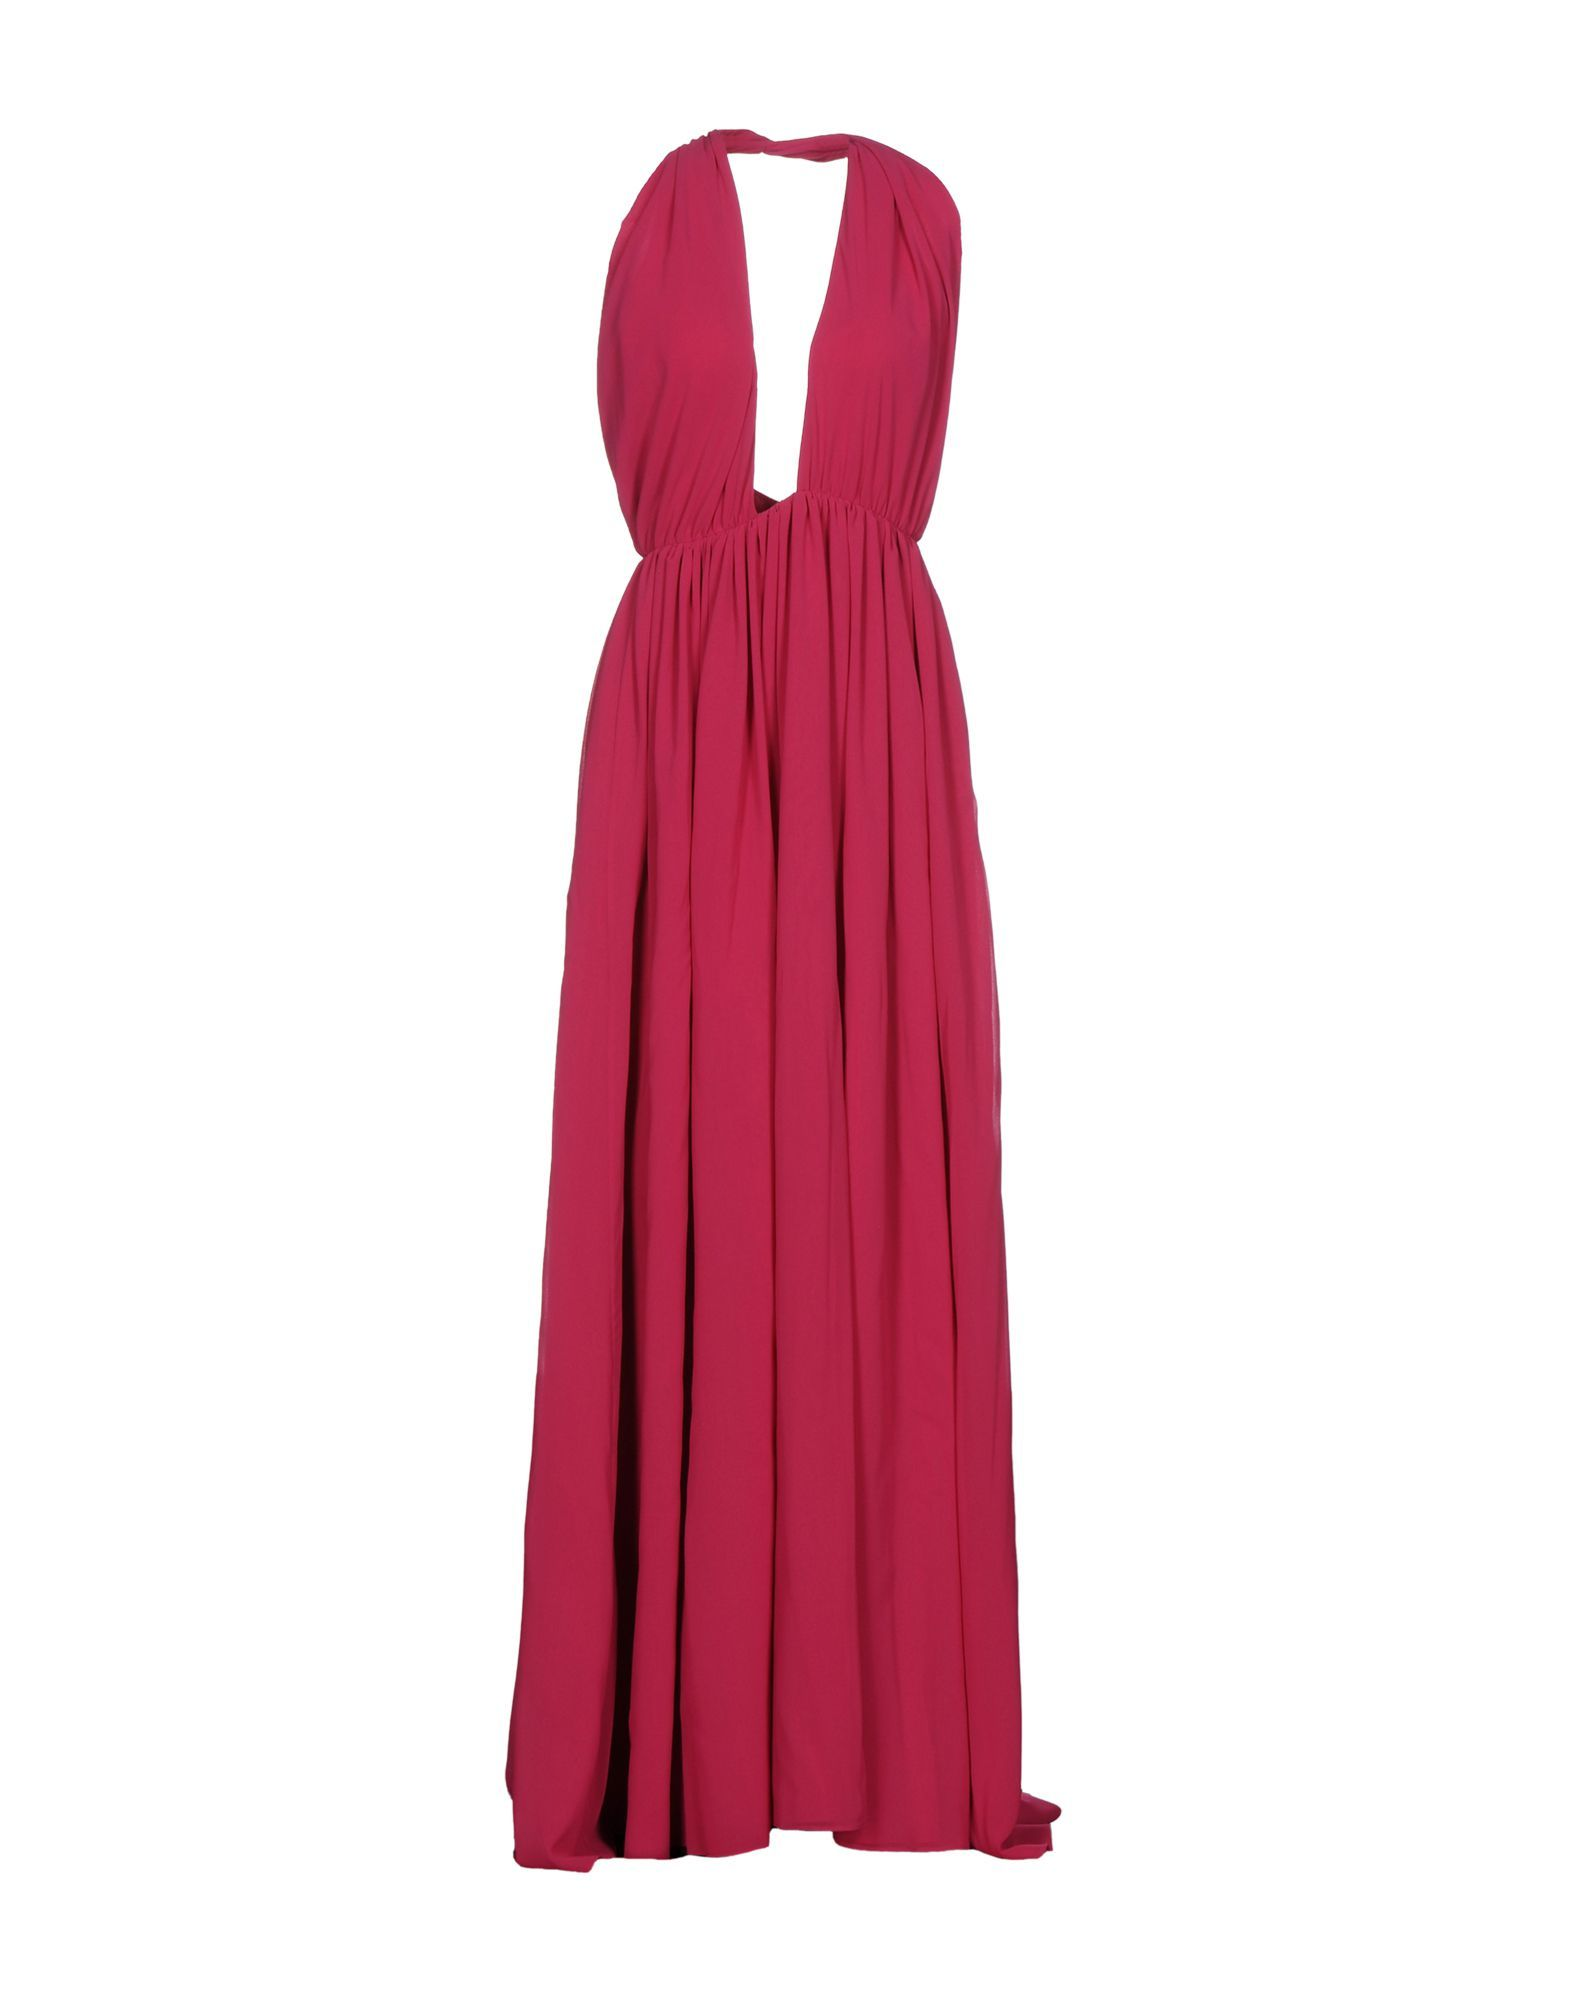 MSGM Garnet Empire Line Full Length Dress